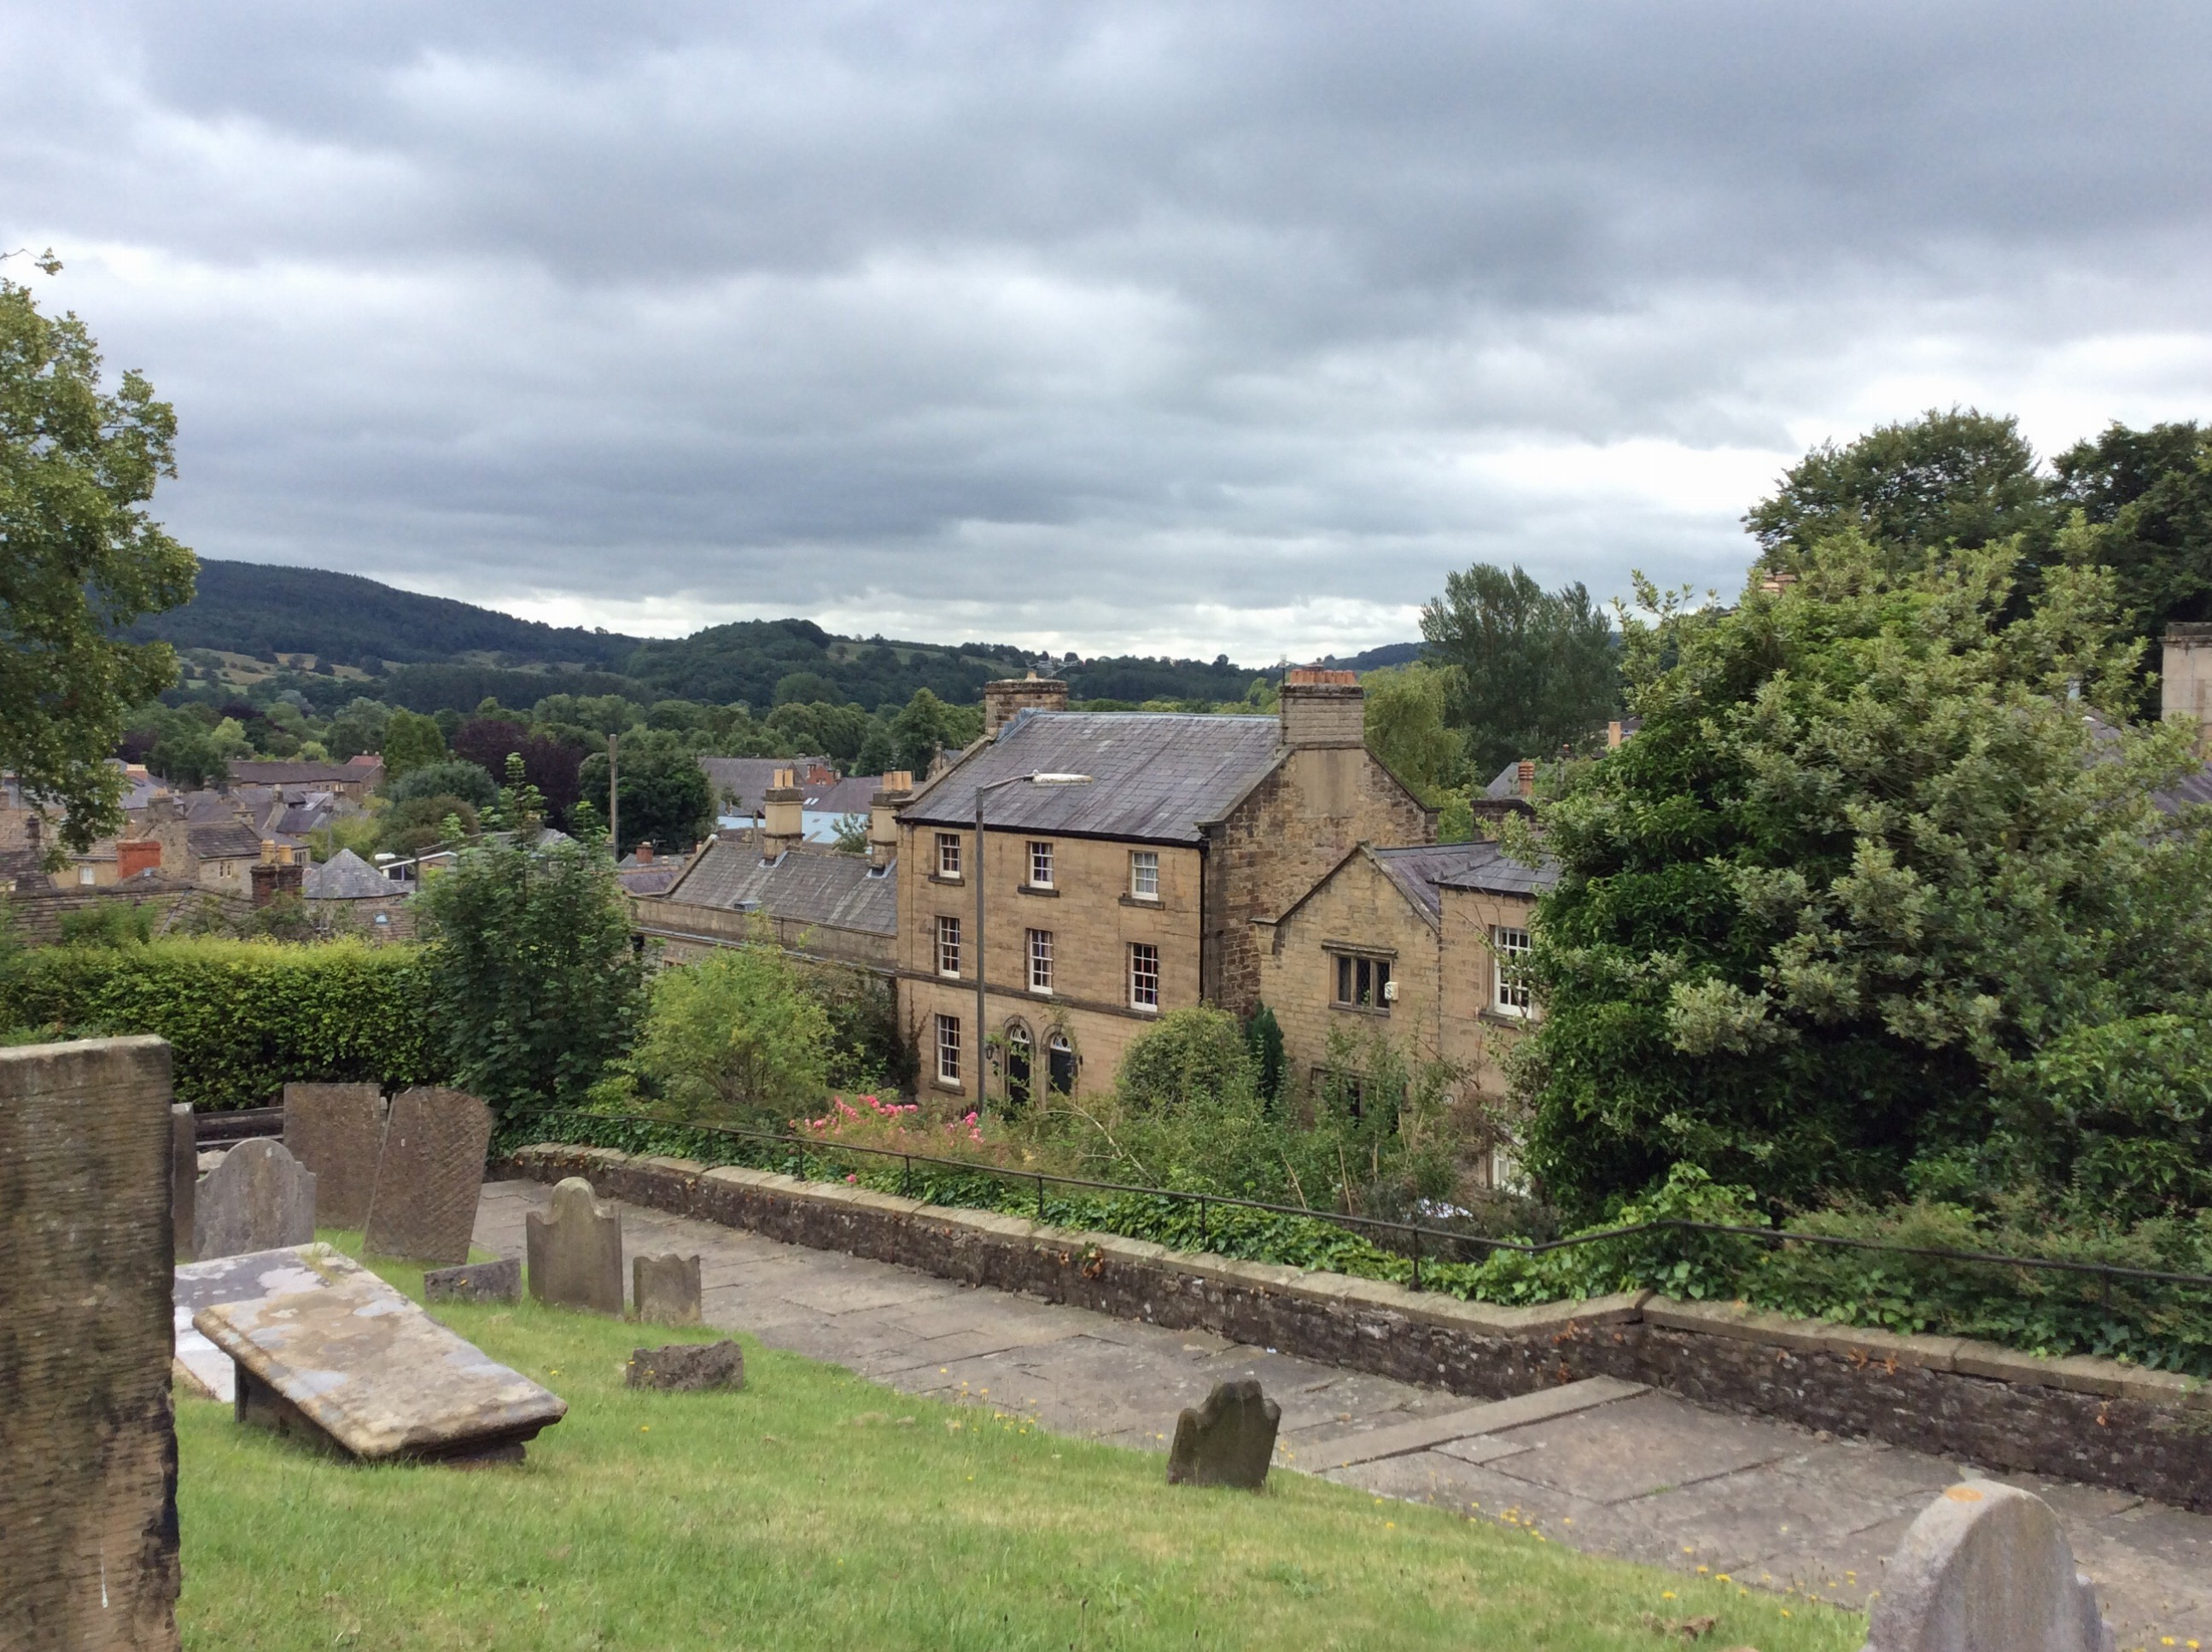 Looking out on charming village of Bakewell.